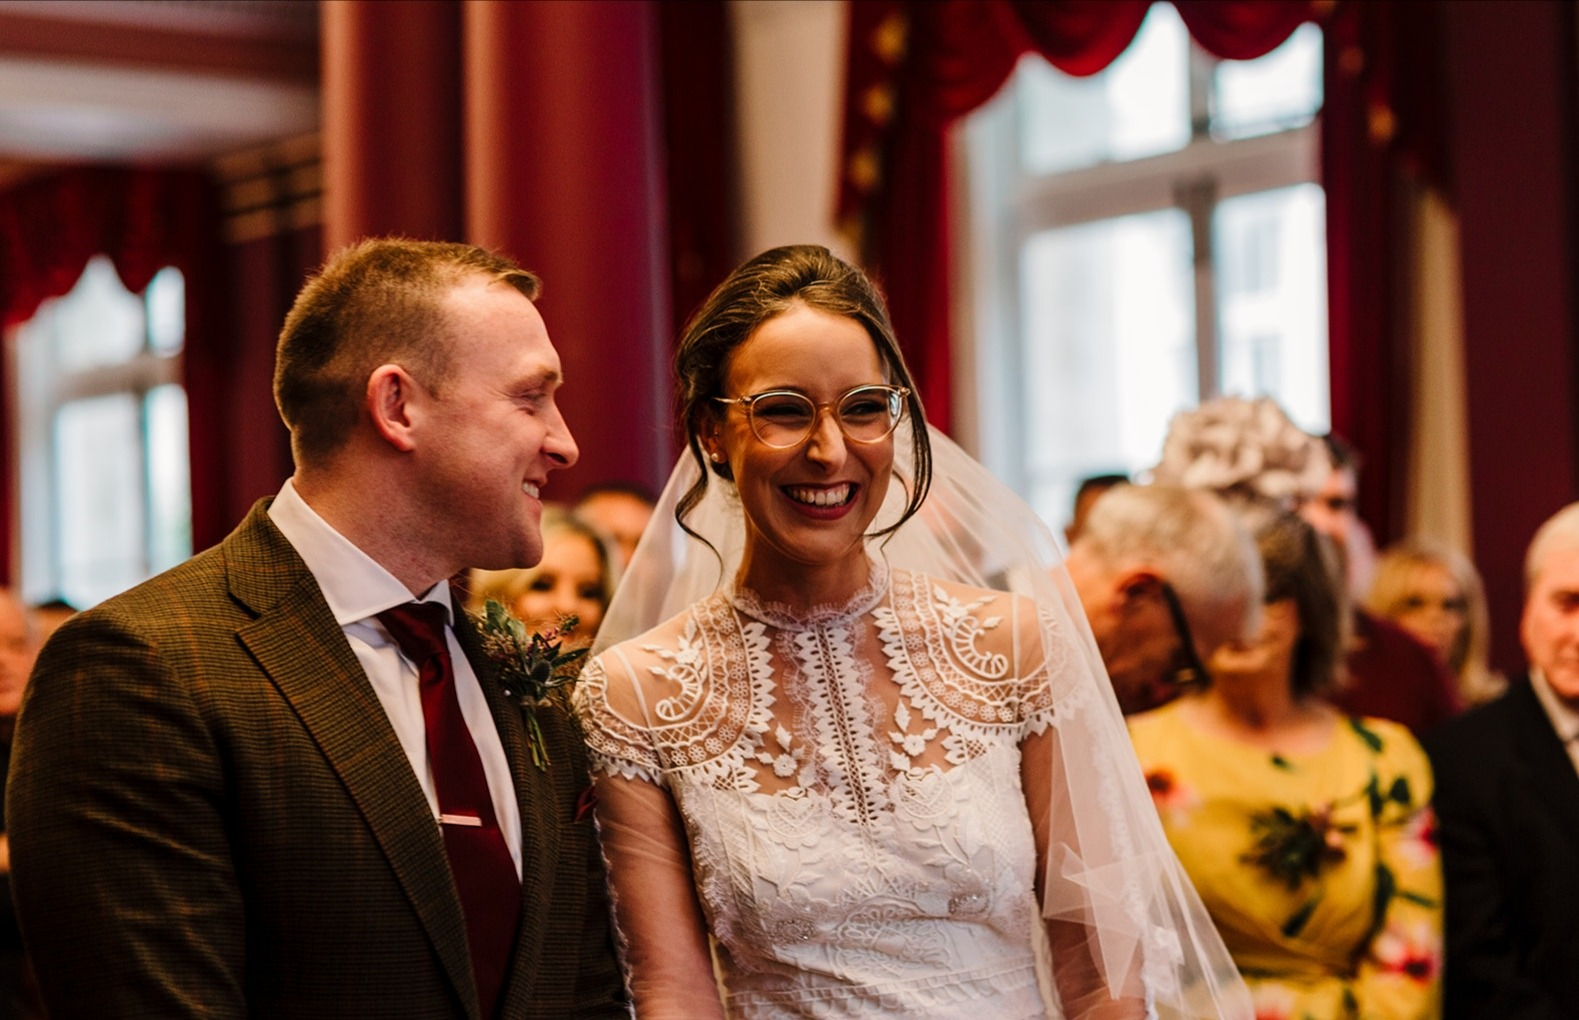 Wedding at the Athenaeum in Liverpool